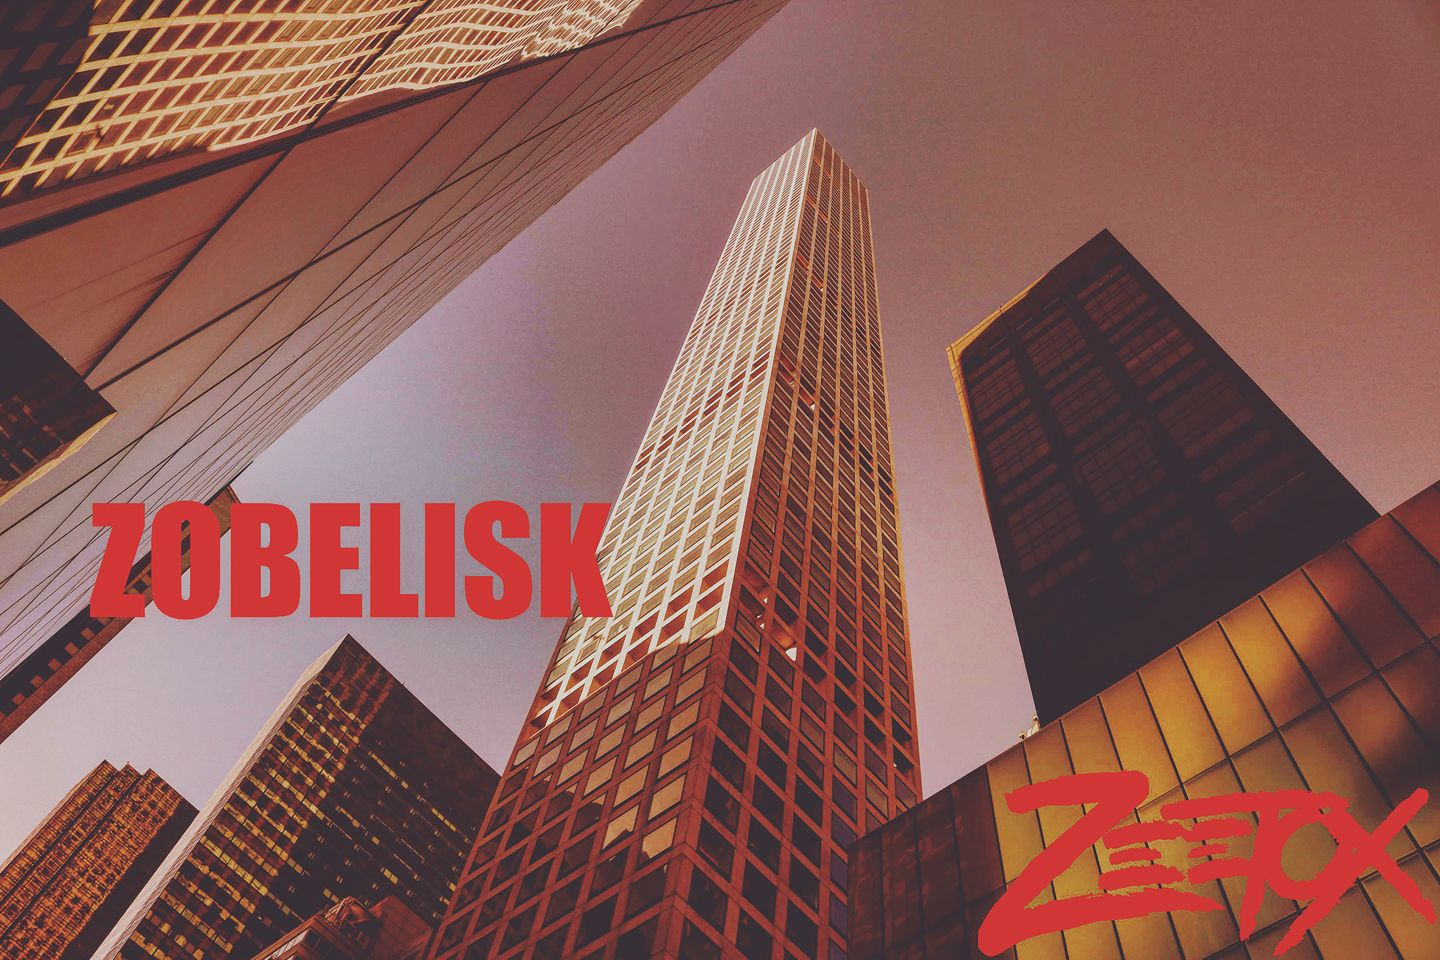 Zobelisk    Original score with video production by Theatre 51.